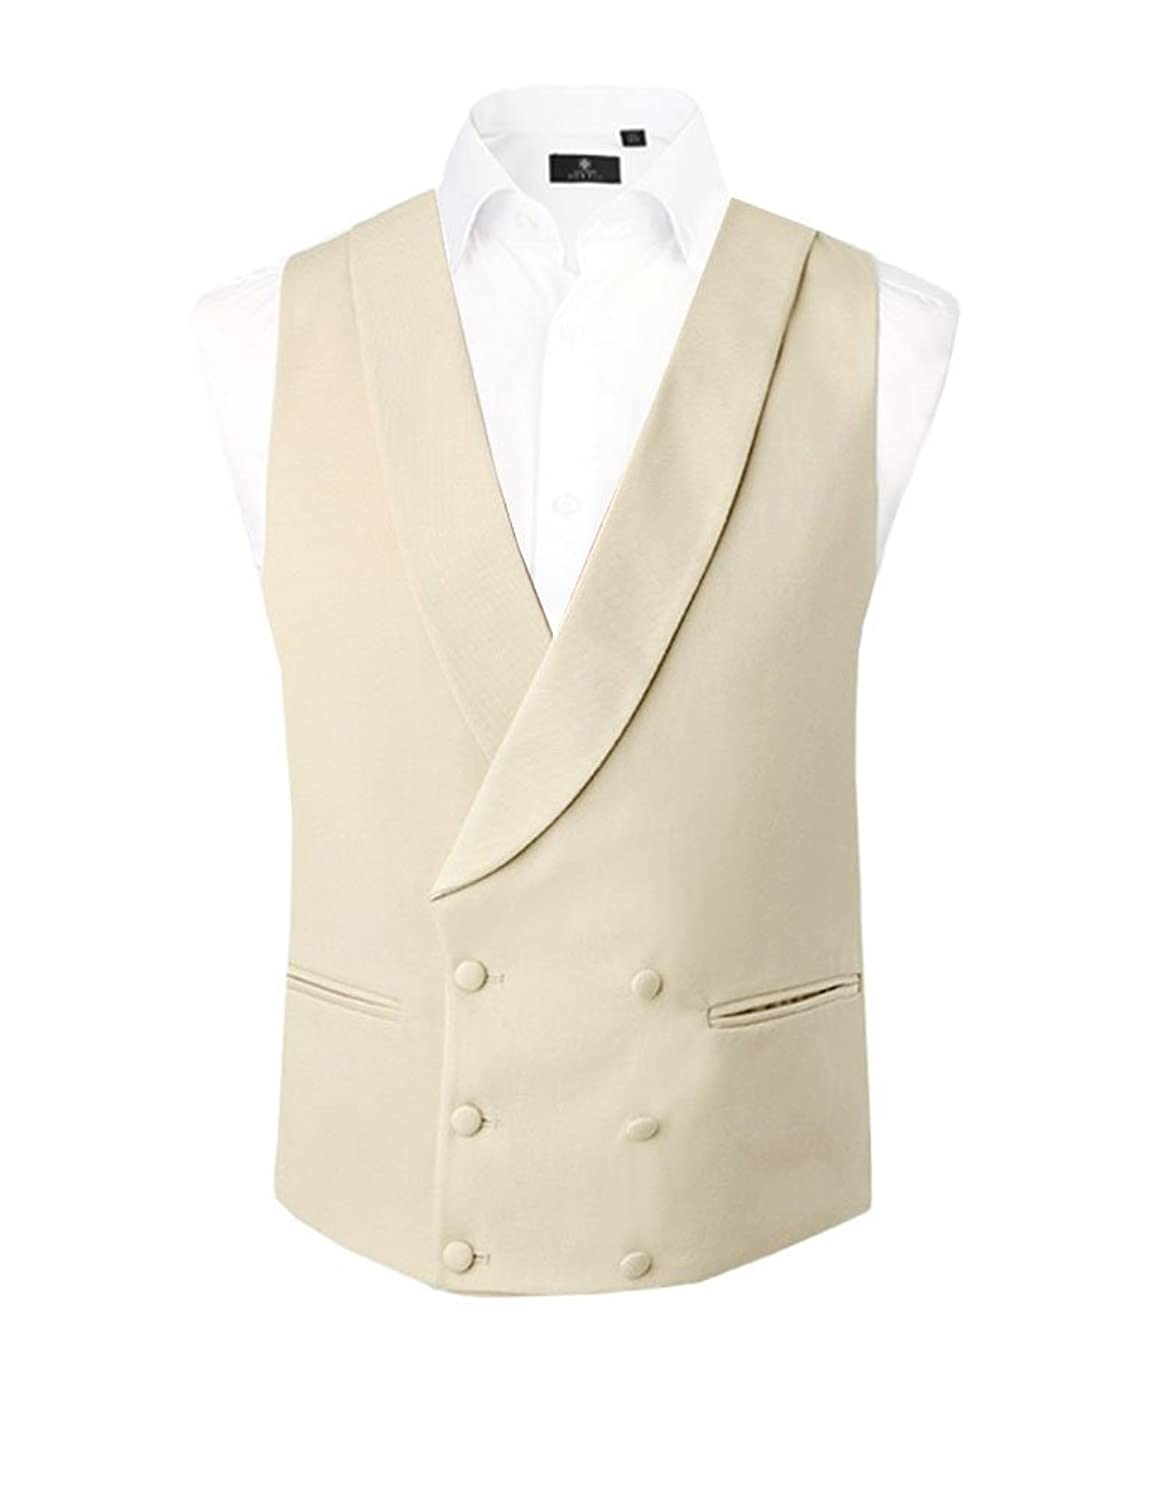 Victorian Men's Formal Wear, Wedding Tuxedo Mens Gold/Buff Double Breasted Shawl Lapel Morning Suit Waistcoat £39.99 AT vintagedancer.com